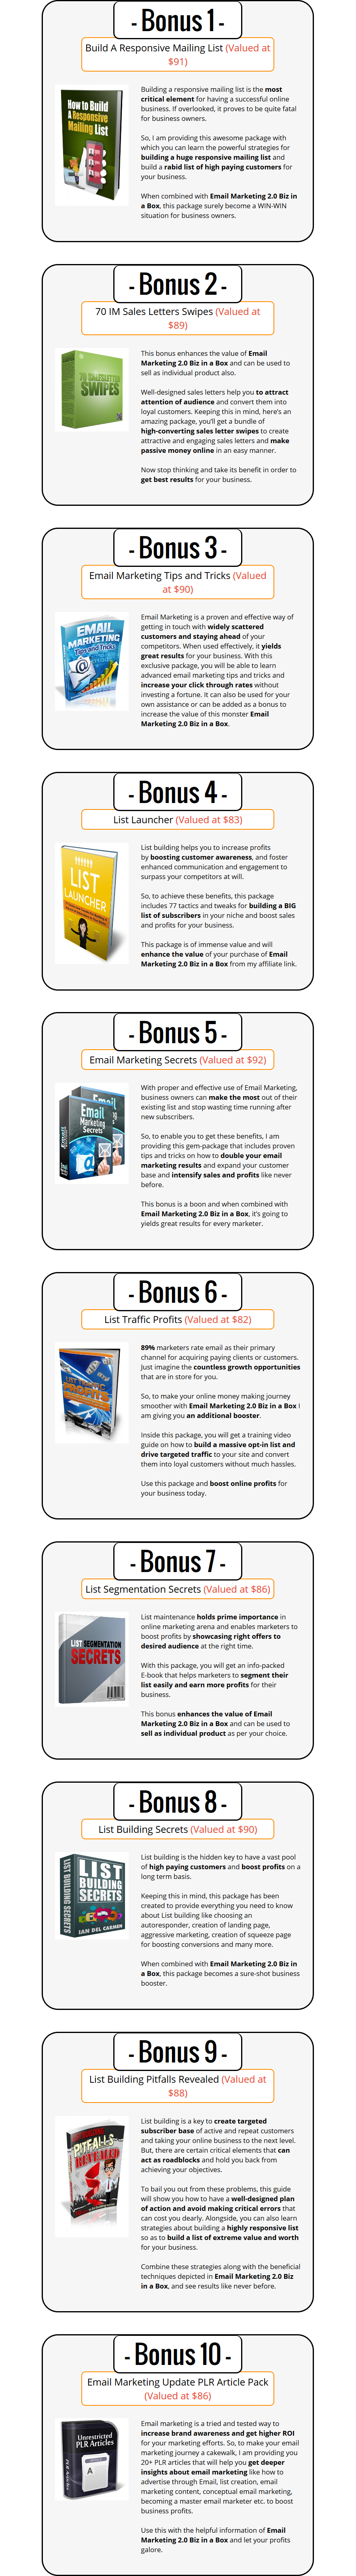 Email Marketing V2 Biz In A Box PLR Bonuses